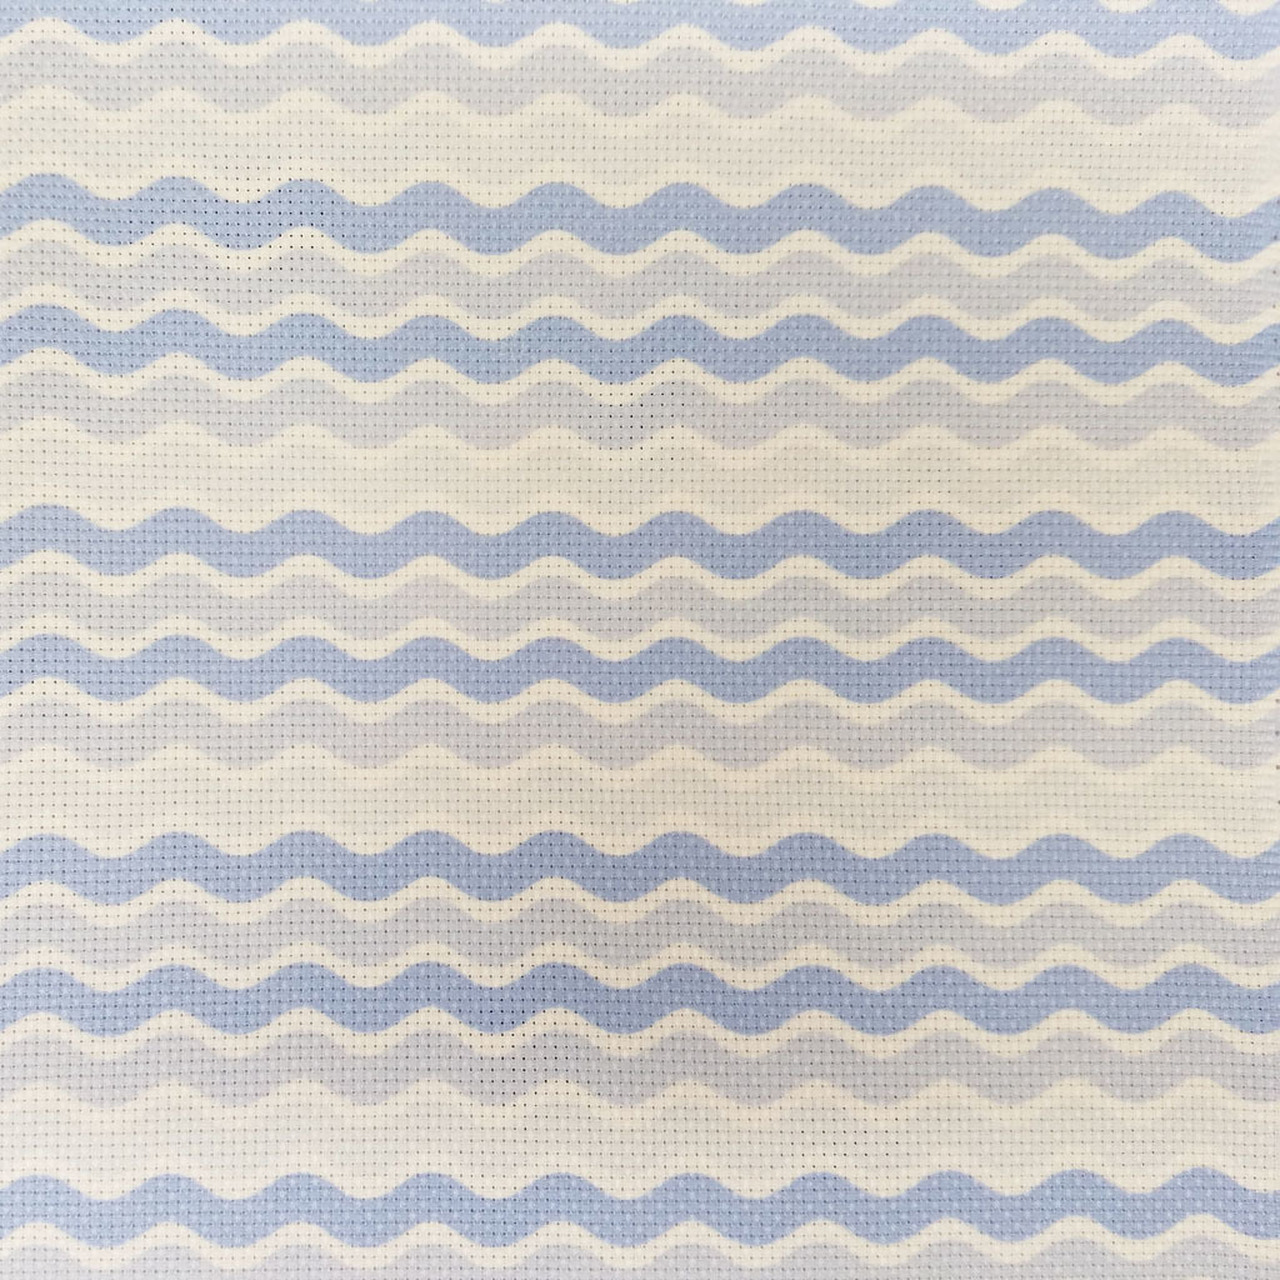 Blue Waves Patterned Cross Stitch Fabric